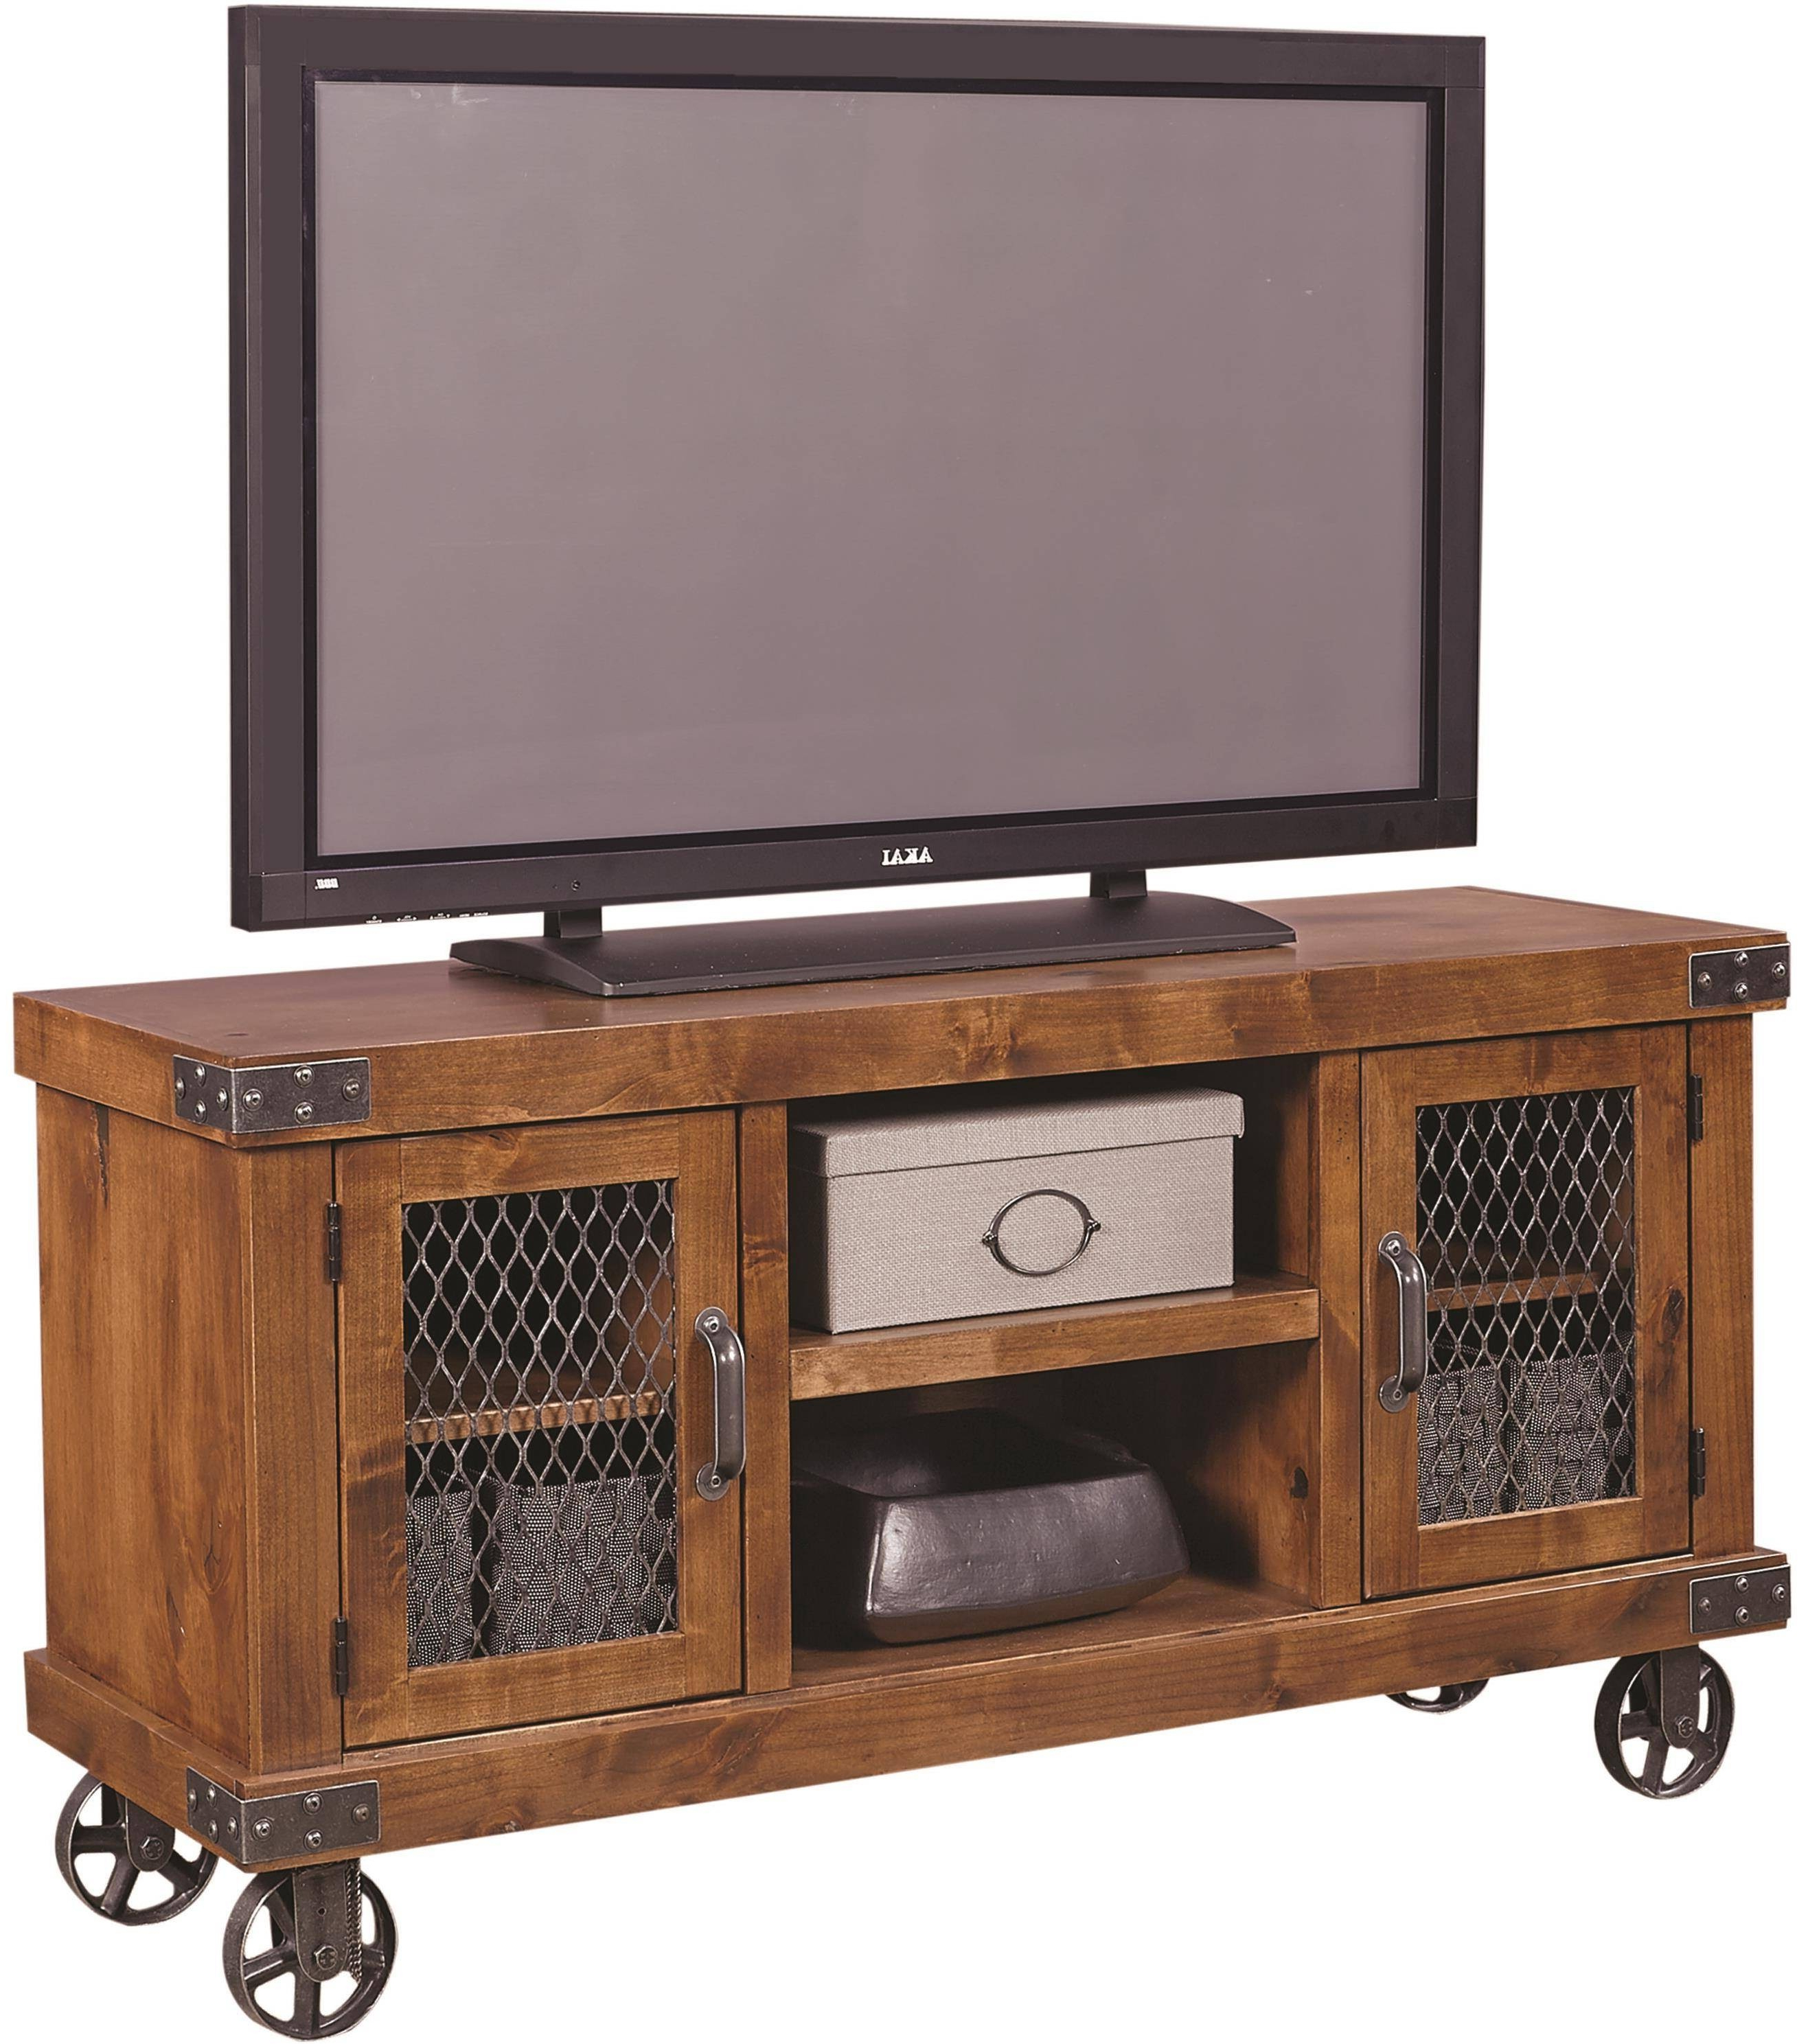 2018 Best Of Industrial Corner Tv Stands Buy Canada Stand Dollar Intended For Latest Industrial Corner Tv Stands (Gallery 9 of 20)